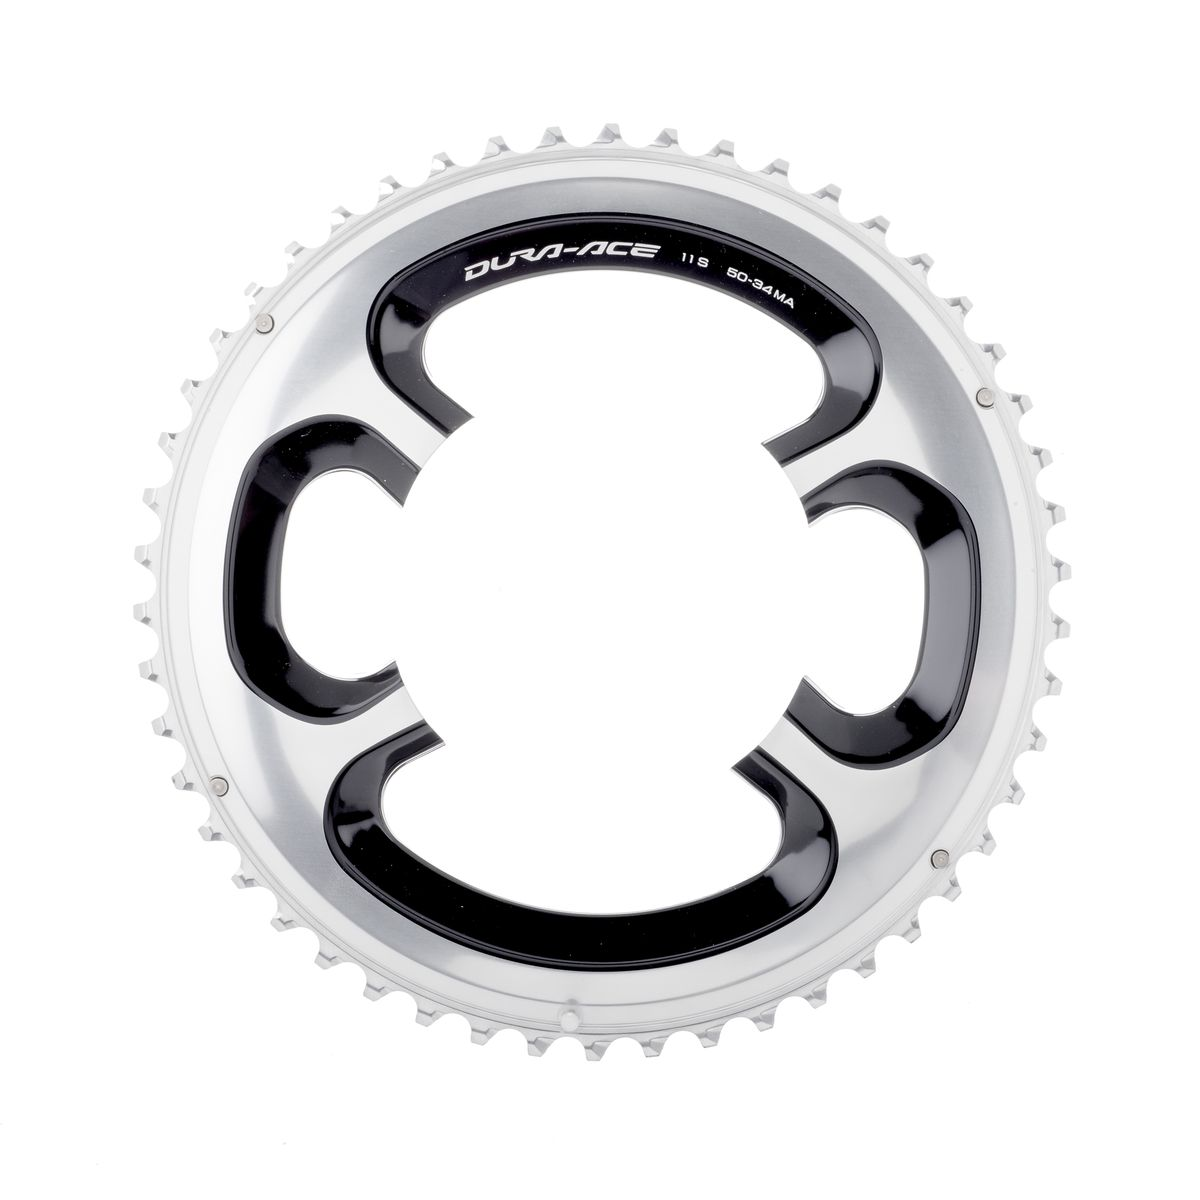 Dura Ace FC-9000 chainring